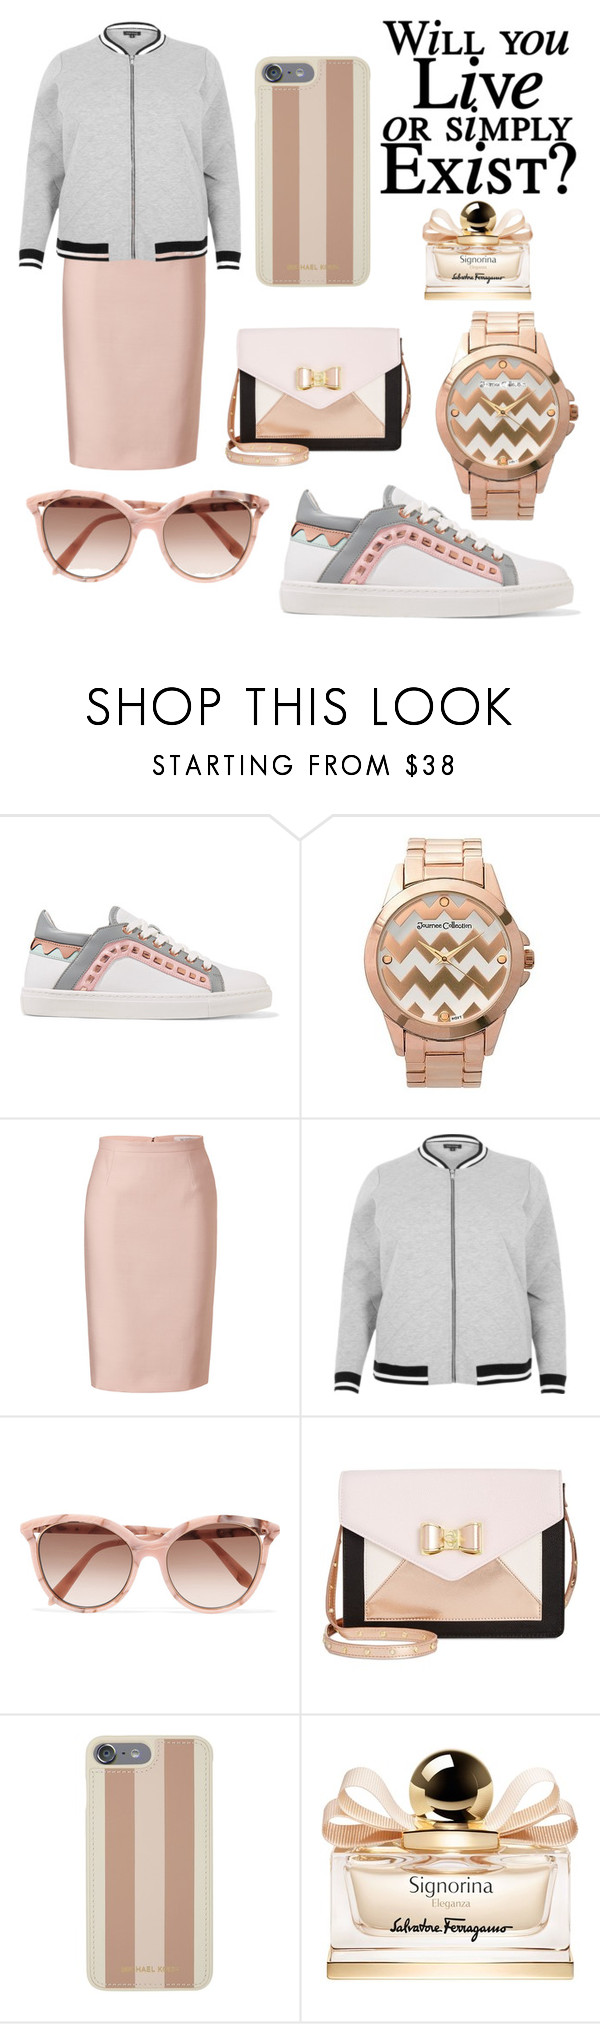 """""""Live And Exist"""" by karaleehope ❤ liked on Polyvore featuring Sophia Webster, Journee Collection, Valentino, River Island, Victoria Beckham, Betsey Johnson, Michael Kors and Salvatore Ferragamo"""